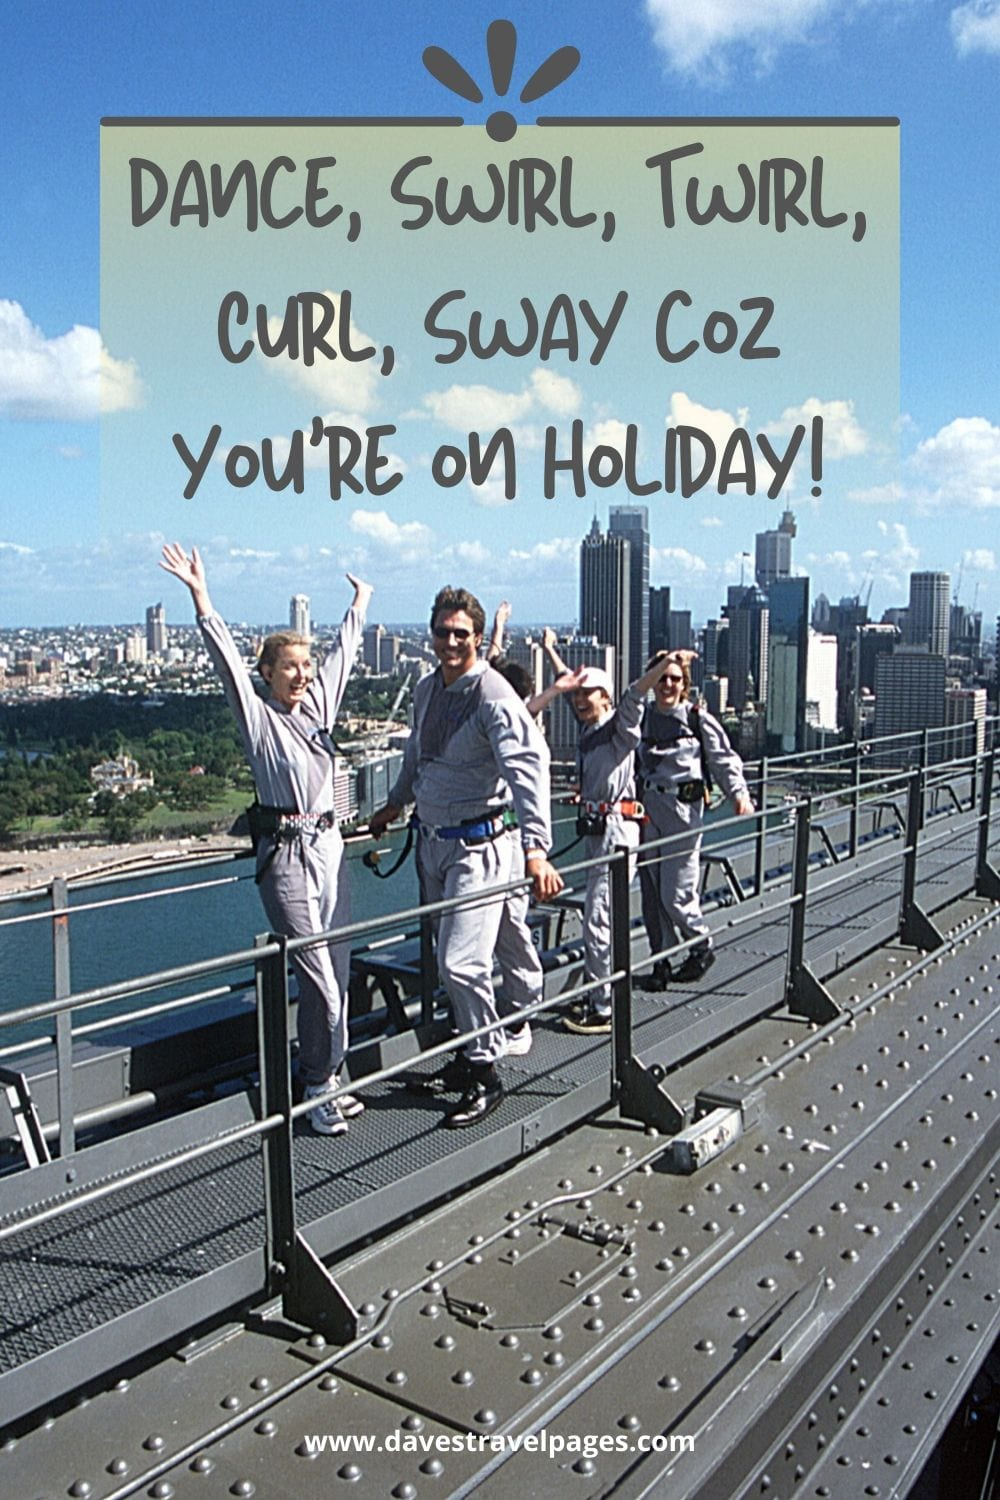 Holiday and Travel Captions: Dance, Swirl, Twirl, Curl, Sway coz you're on Holiday!